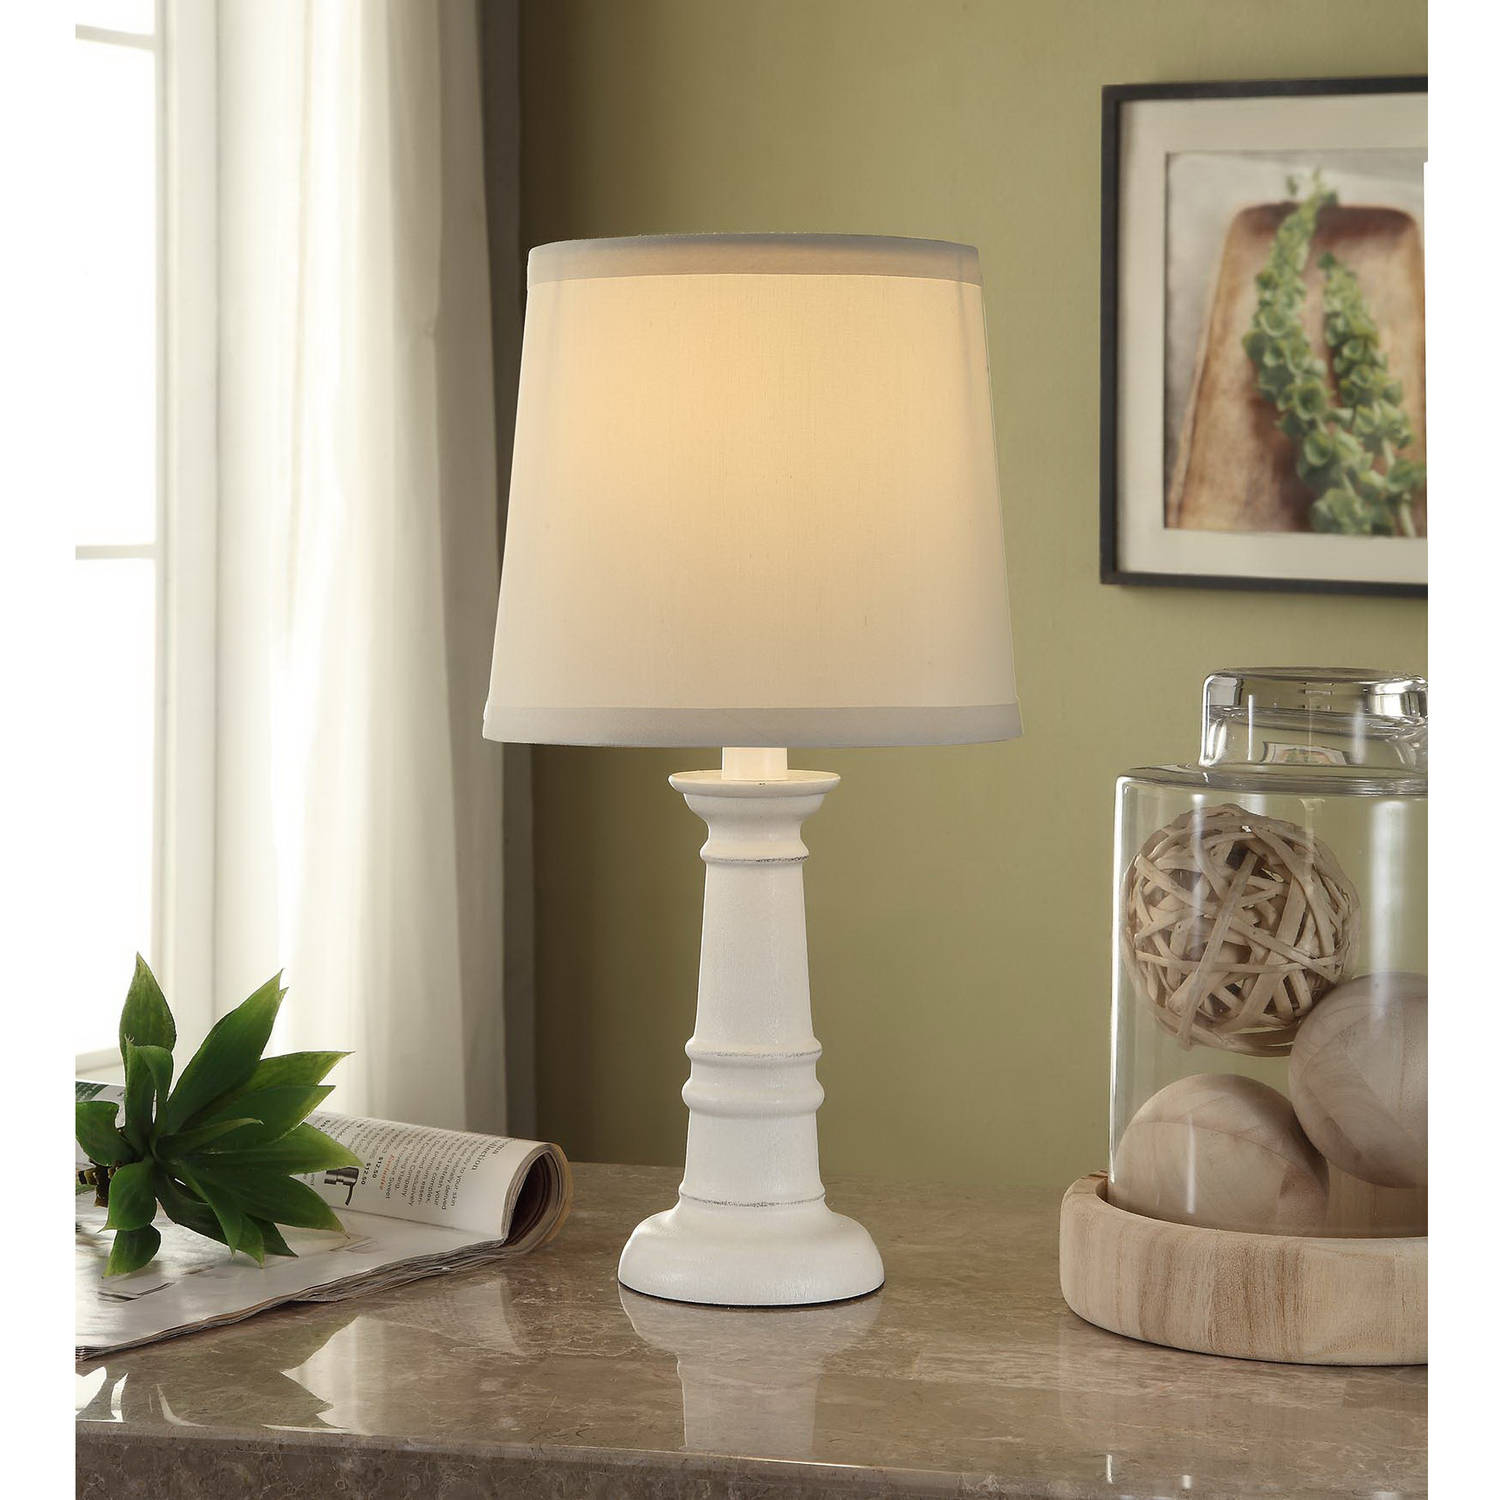 Mainstays Accent Lamp Base, White-Washed Wood Finish